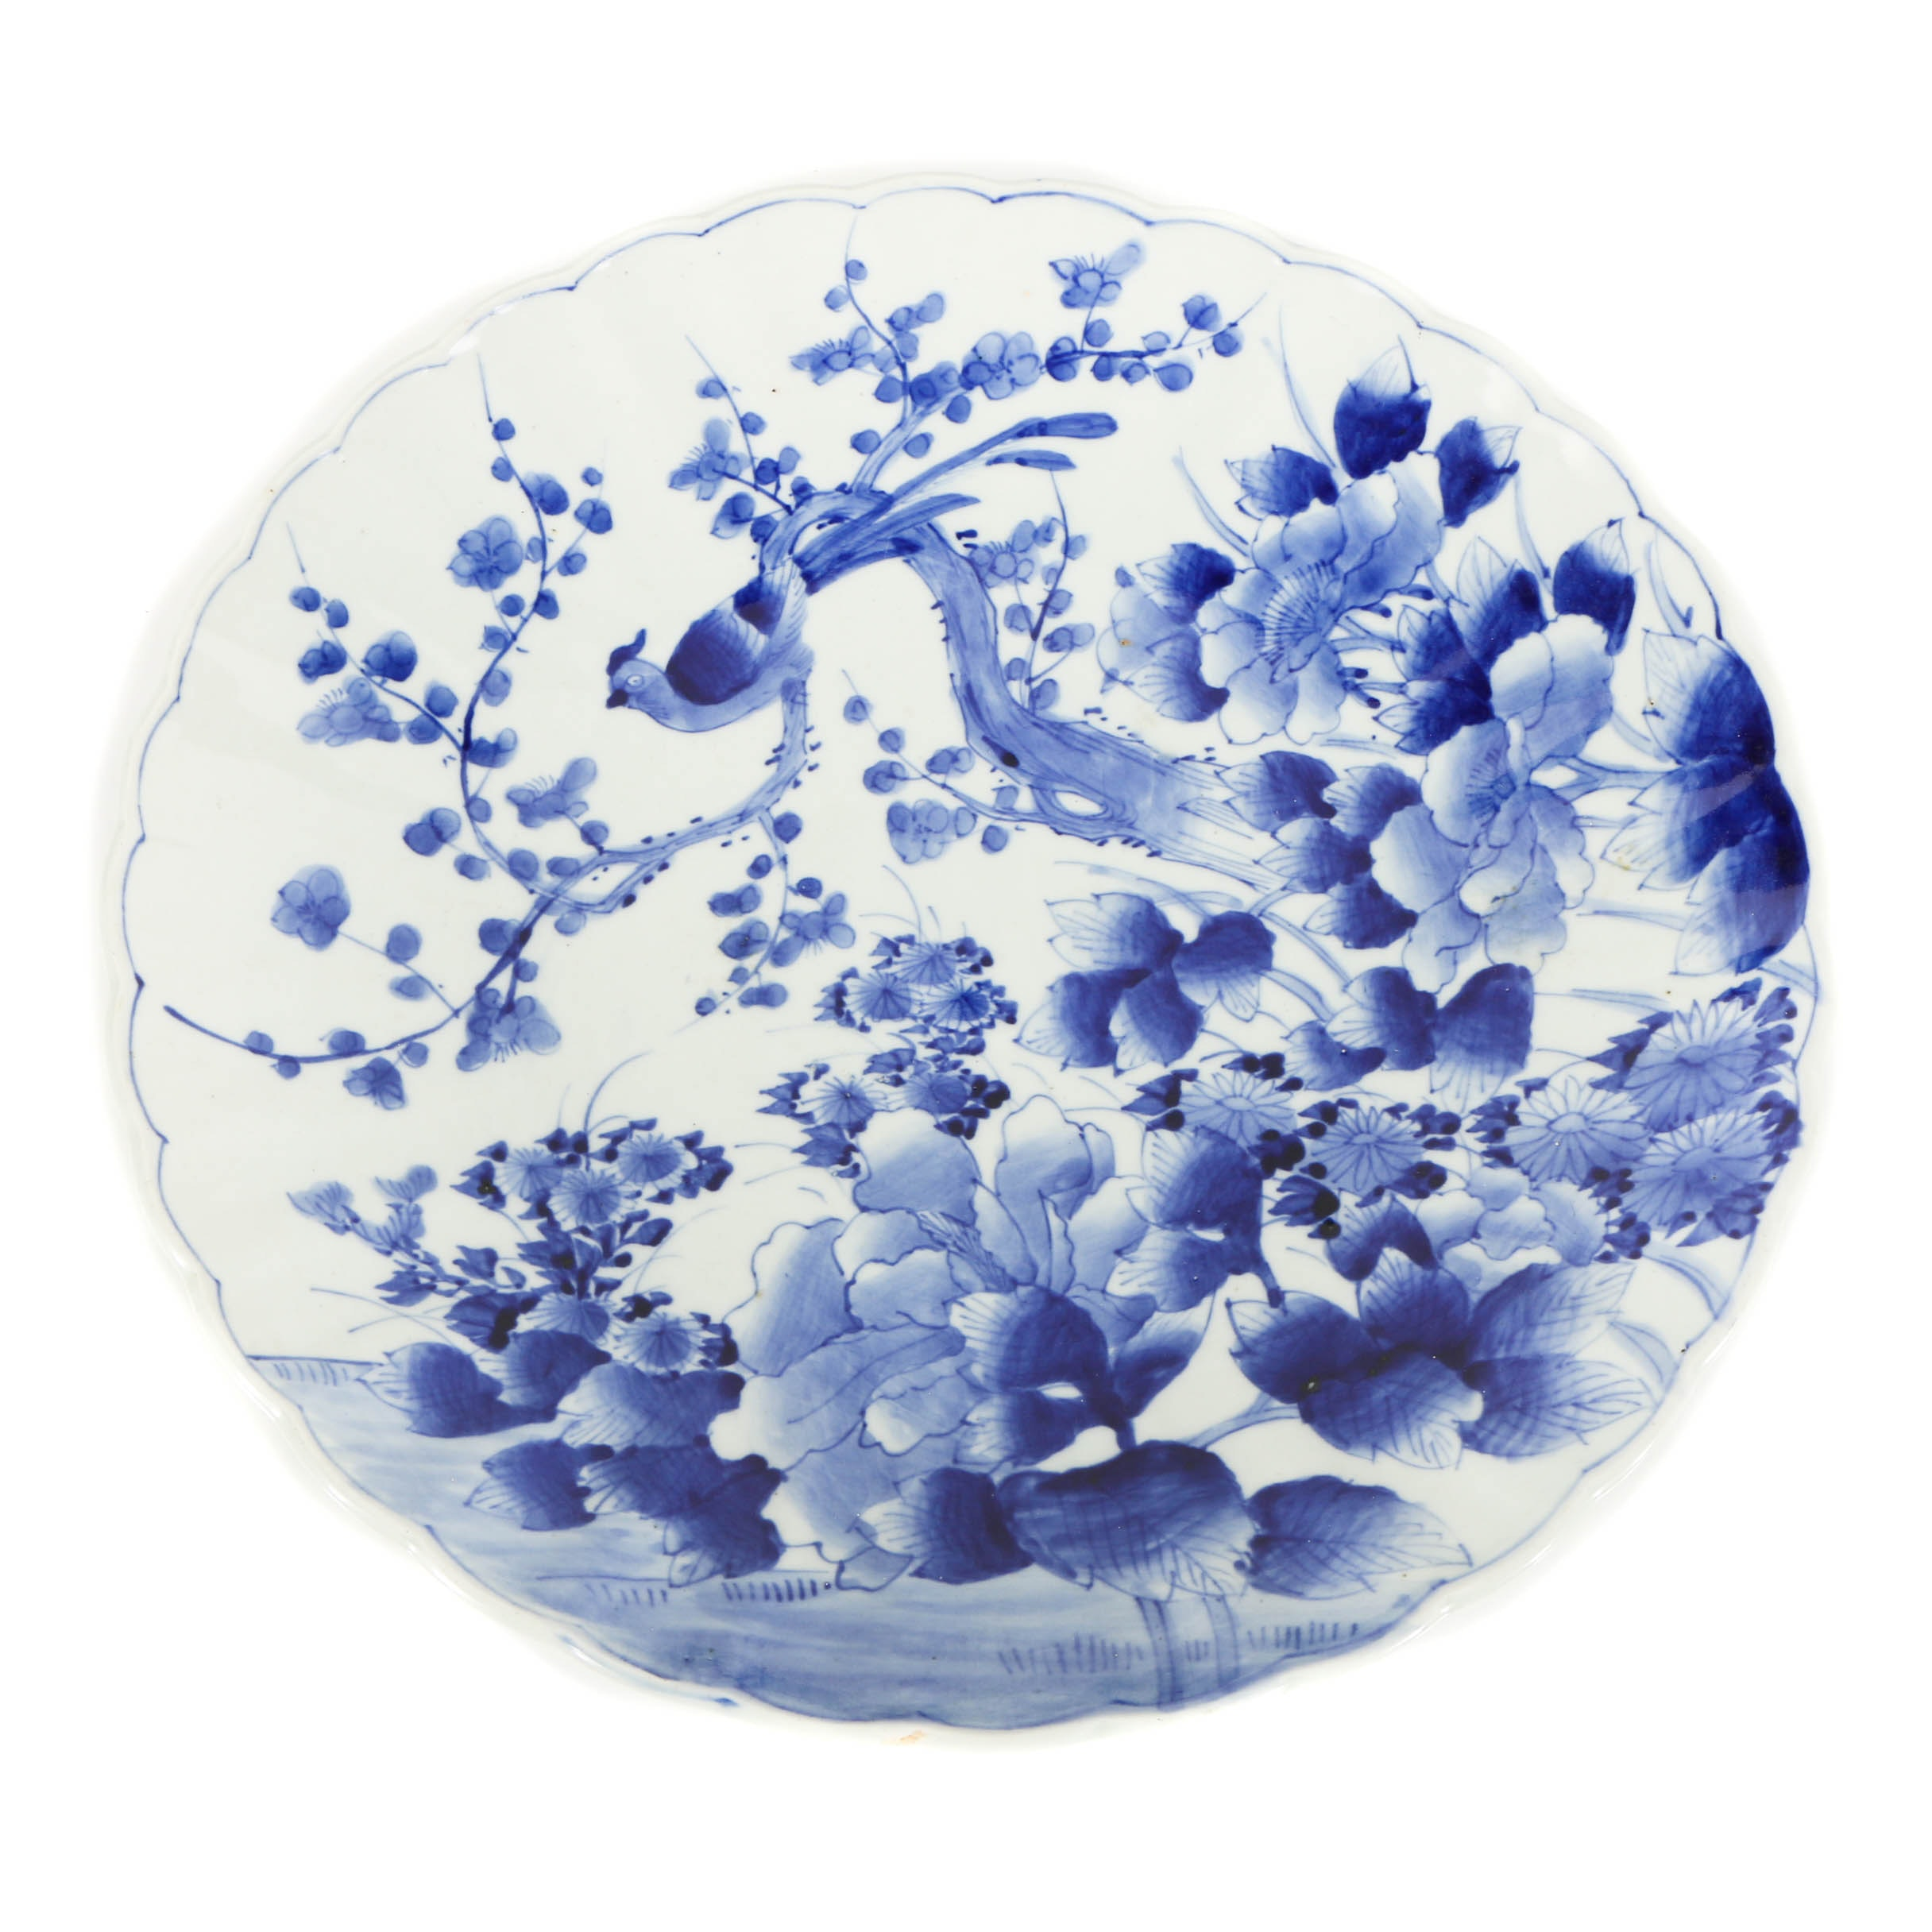 Japanese Blue and White Porcelain Plate with Bird and Flower Motif